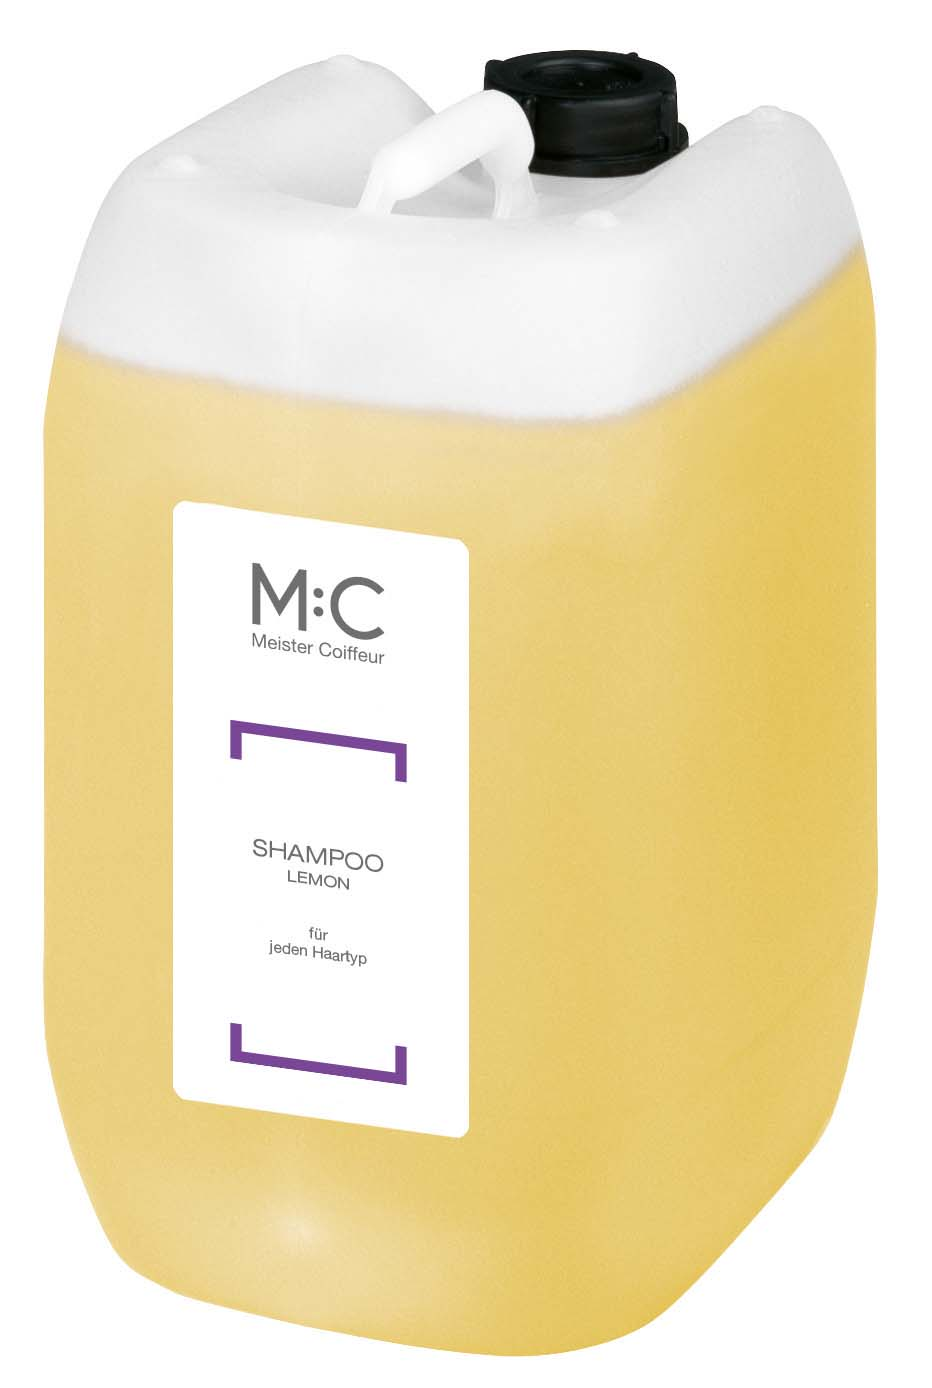 M:C Shampoo Lemon U 10.000 ml